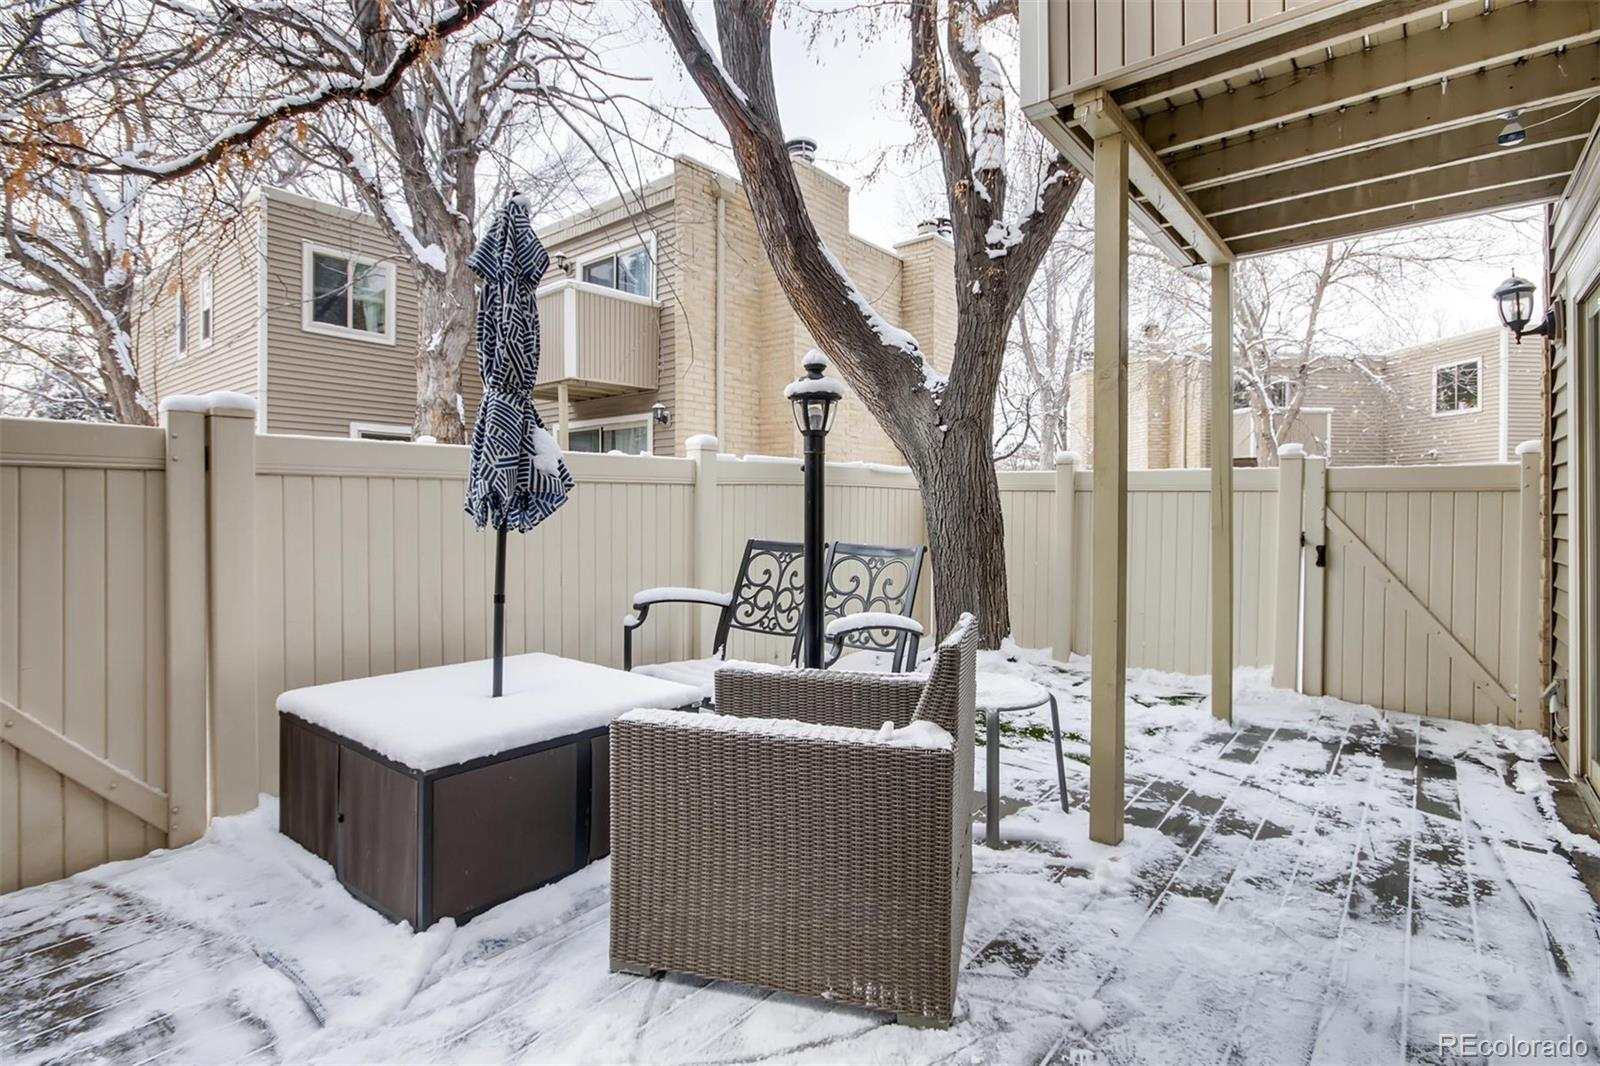 MLS# 2965699 - 3 - 9573 E Kansas Circle #60, Denver, CO 80247